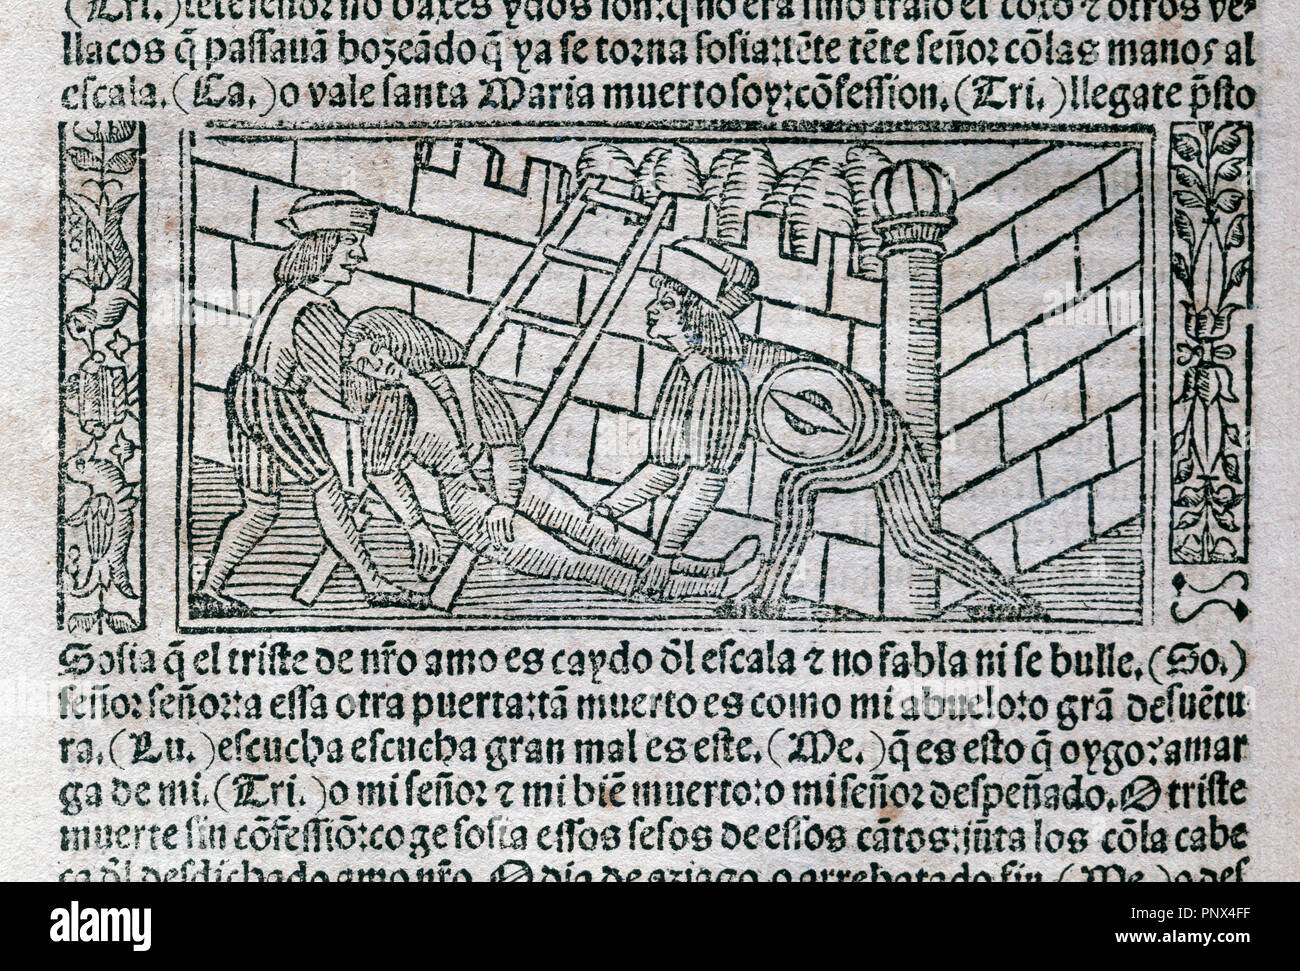 The Celestina or Tragicomedy of Calisto and Melibea (1499). By Fernando de Rojas (ca.1465-1541). Engraving depicting a scene of the work. Edition printed in Burgos, Spain, 1531. Library of Catalonia. Barcelona. Catalonia. Spain. - Stock Image